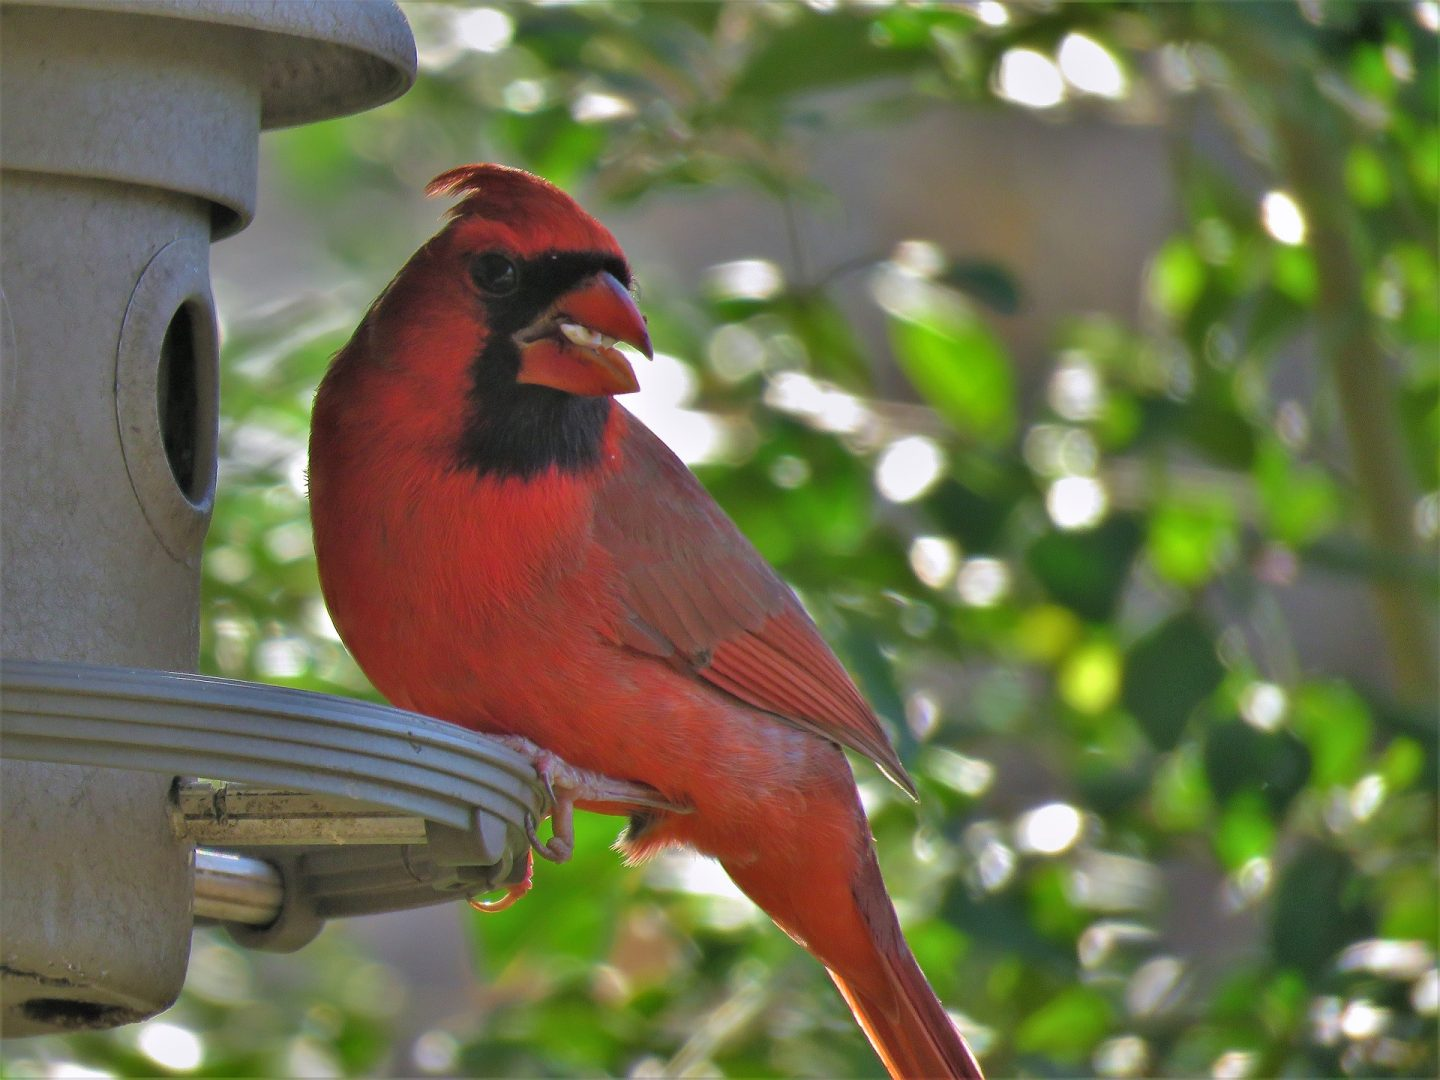 Help your feathered friends this winter by turning your yard into a bird sanctuary